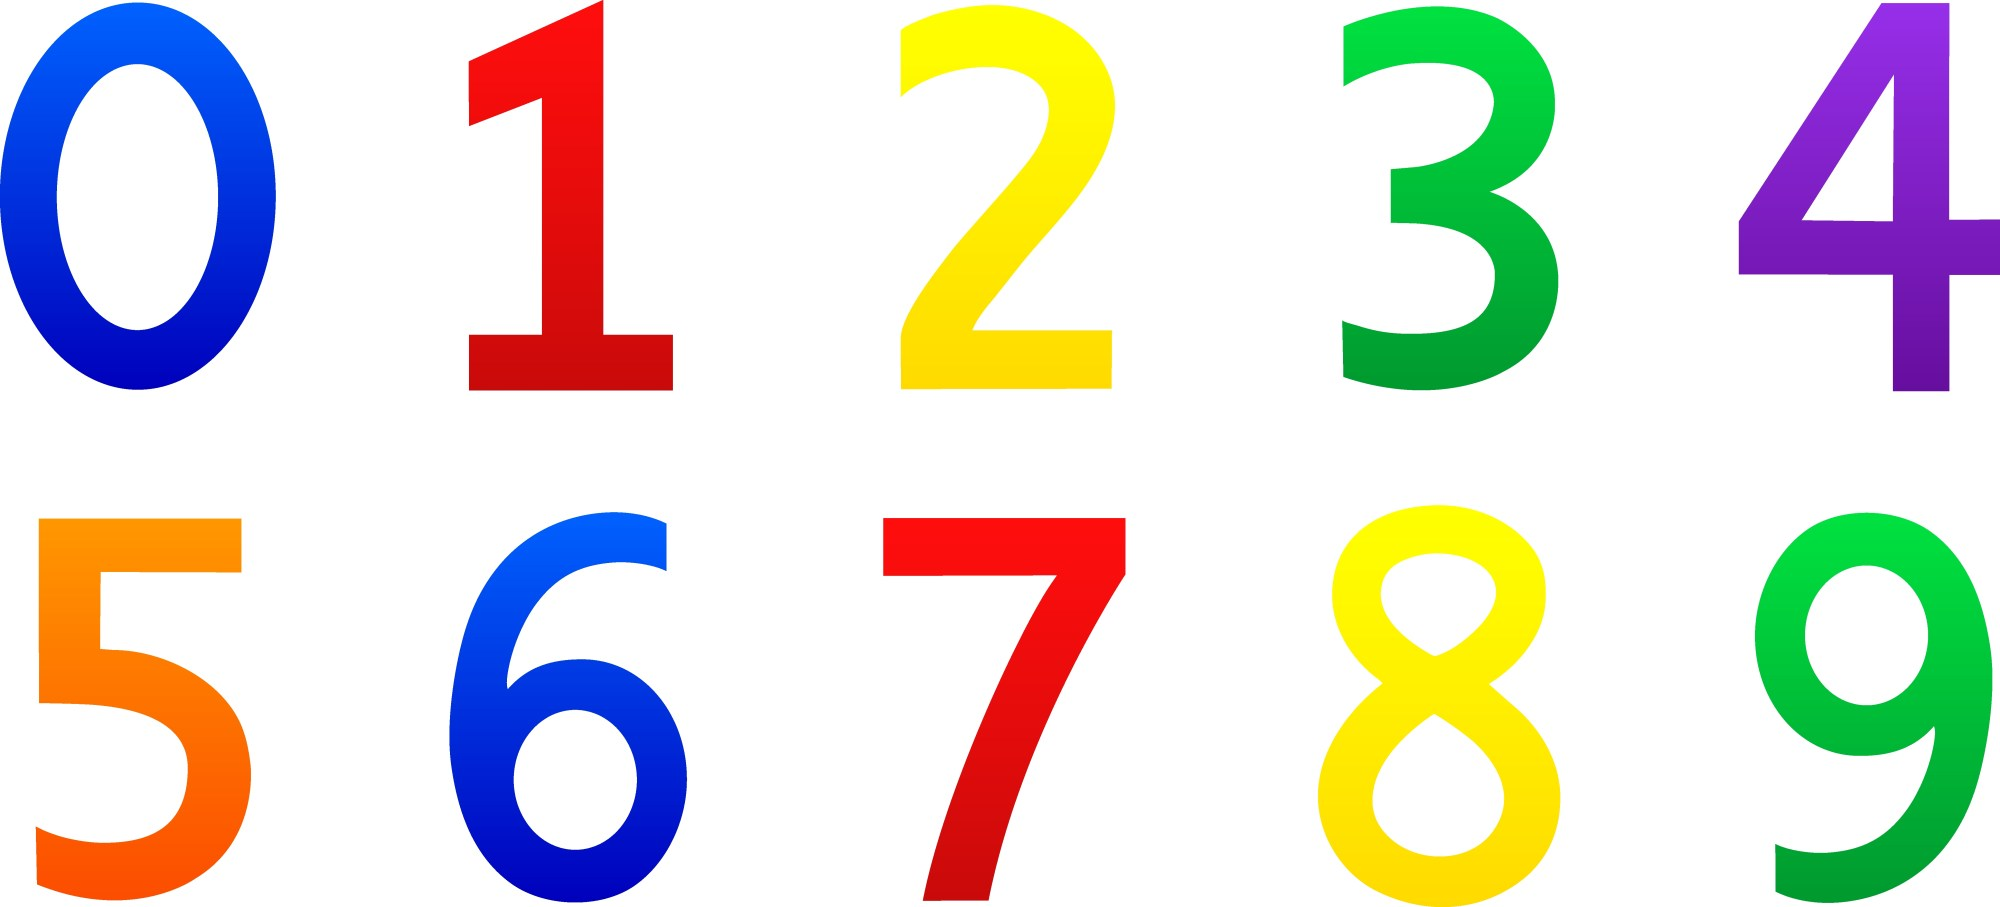 hight resolution of 3 clipart number 0 fresh numbers design digital